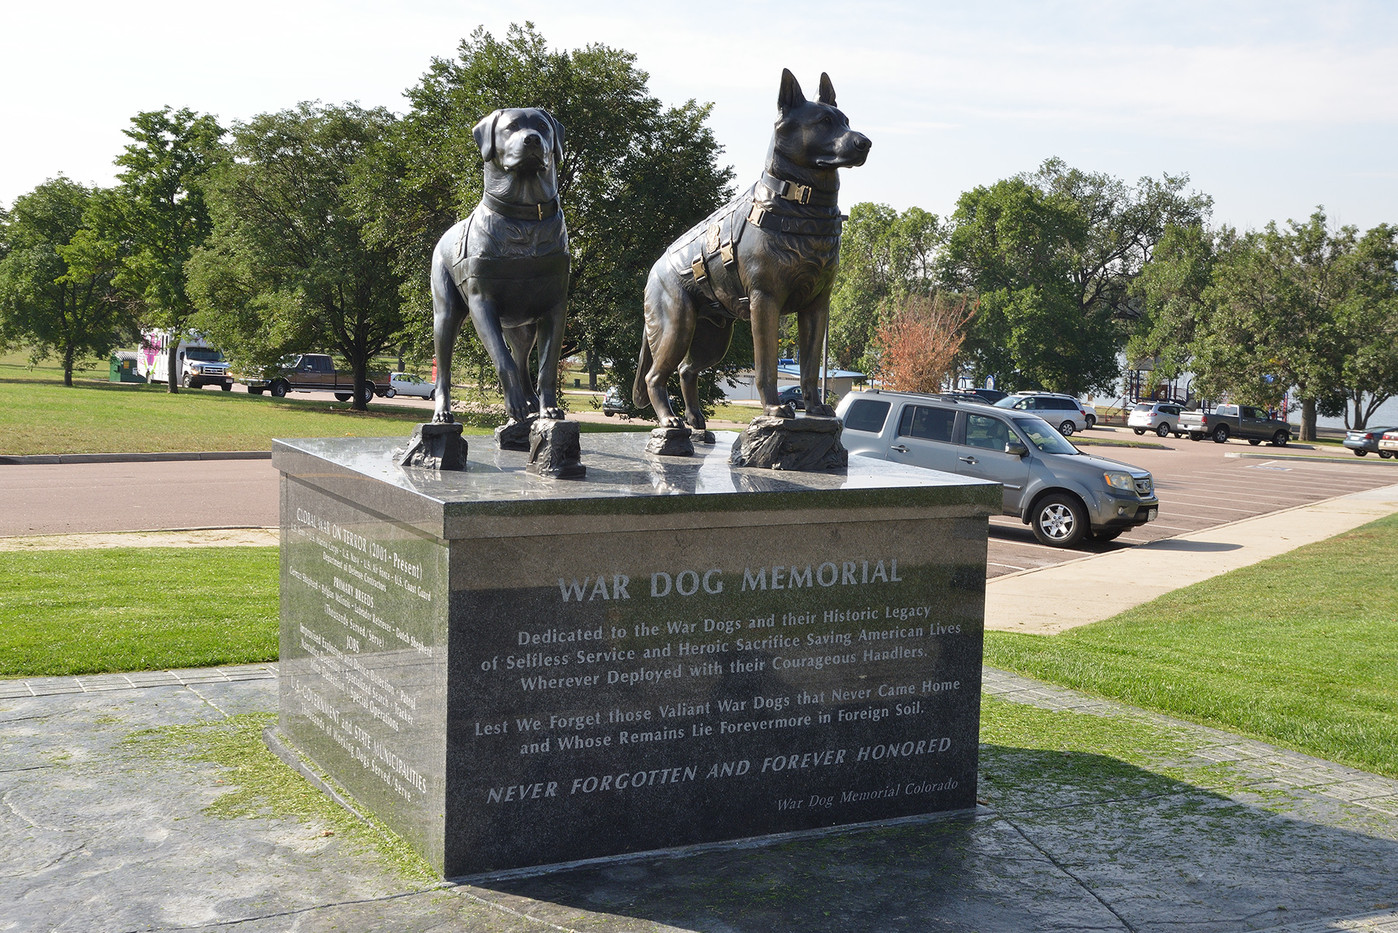 2020-09-12_001War Dog Mem cropped.jpg